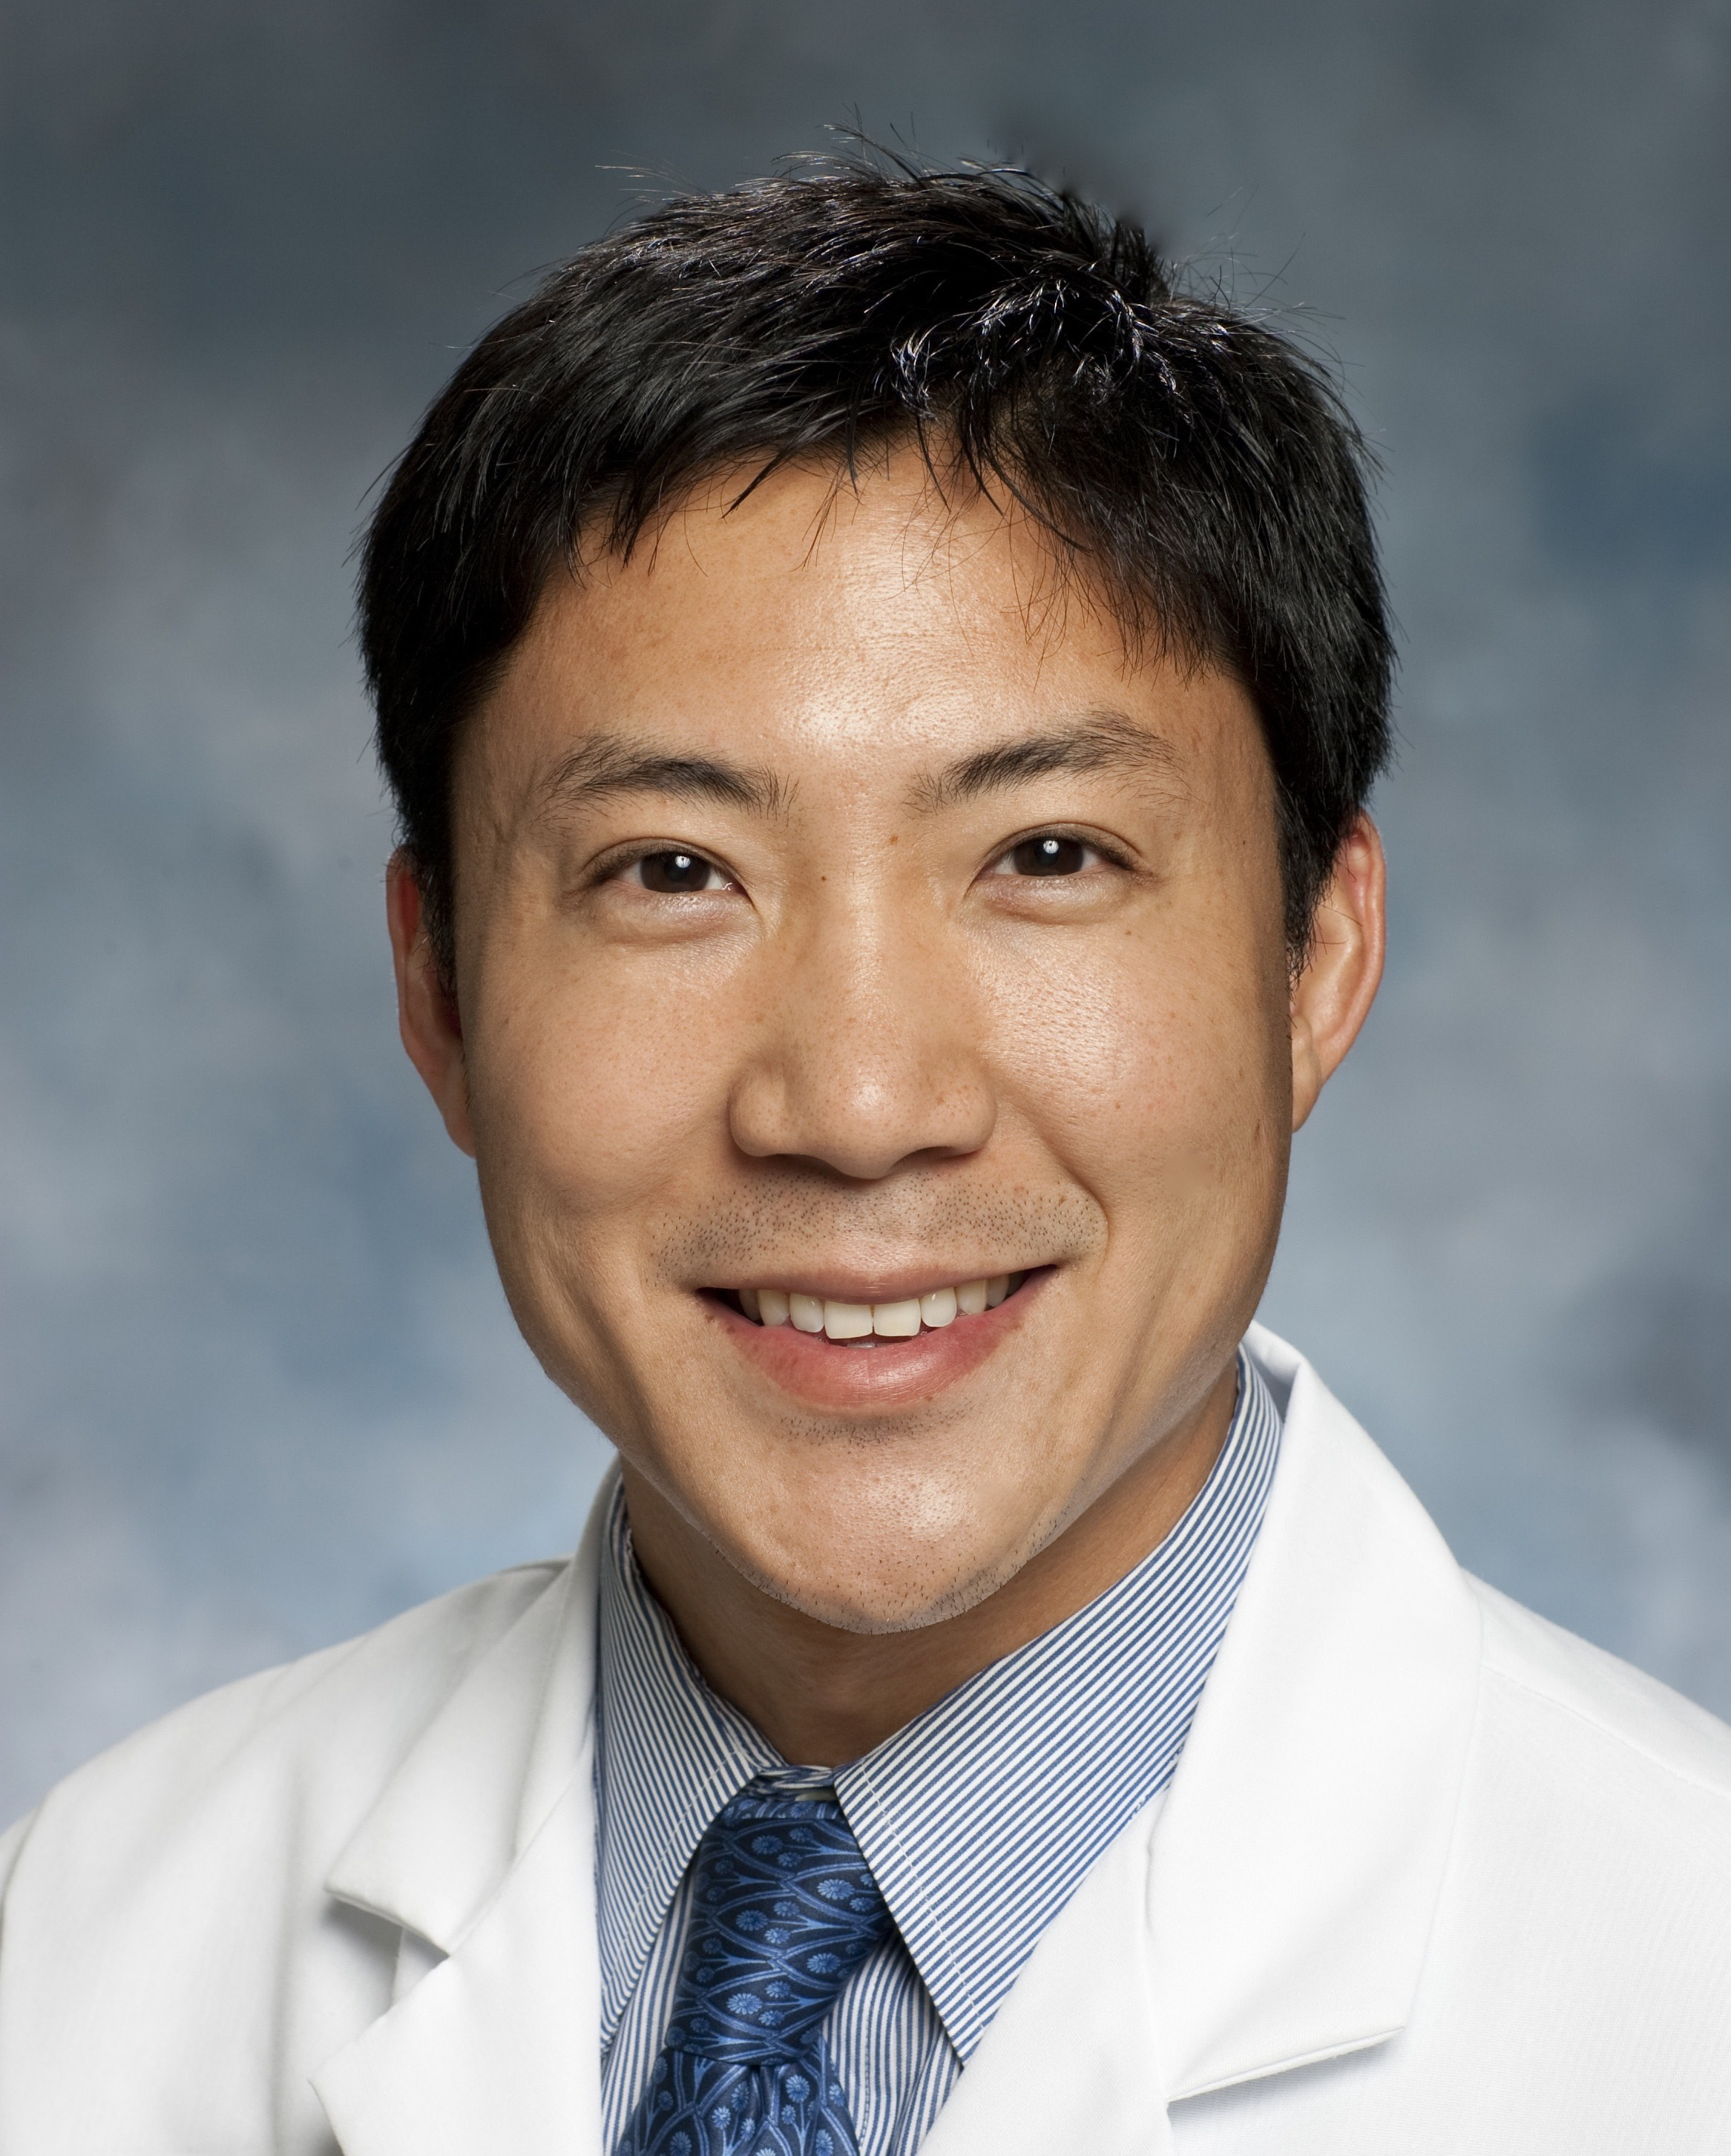 Thomas L Jang, FACS, MD, MPH